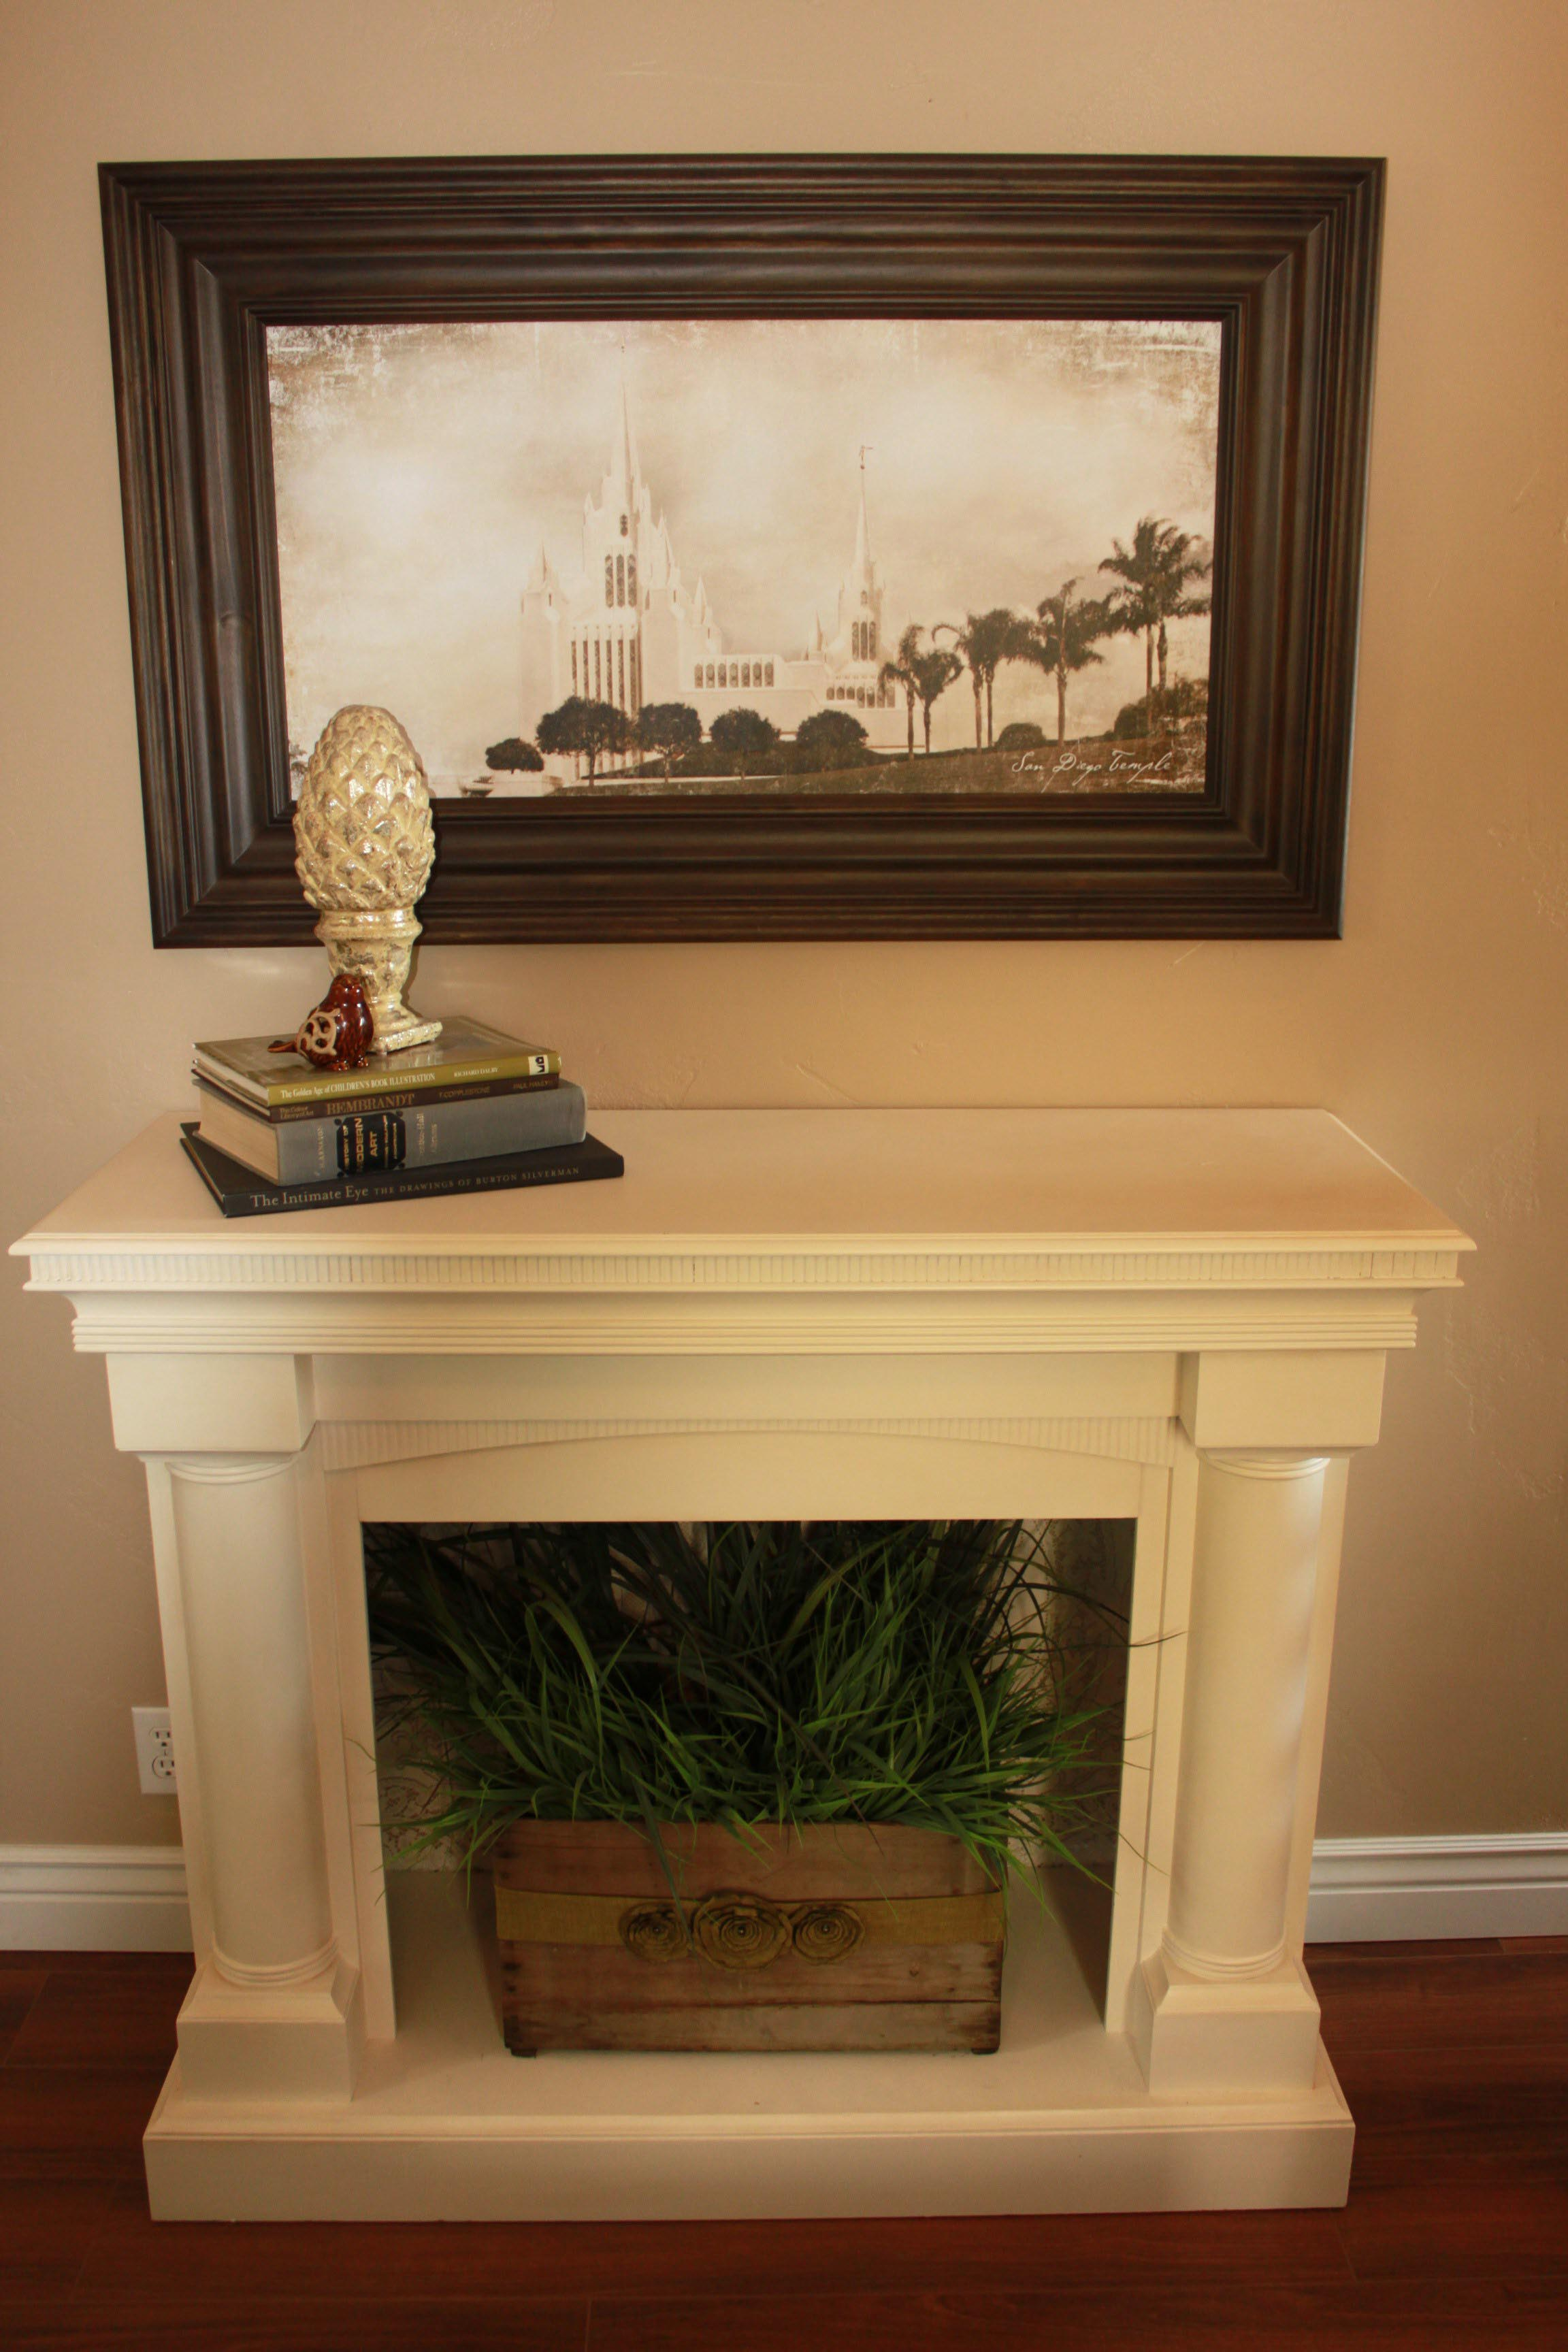 Faux fireplace mantel installation fireplace designs for Faux marble fireplace mantels